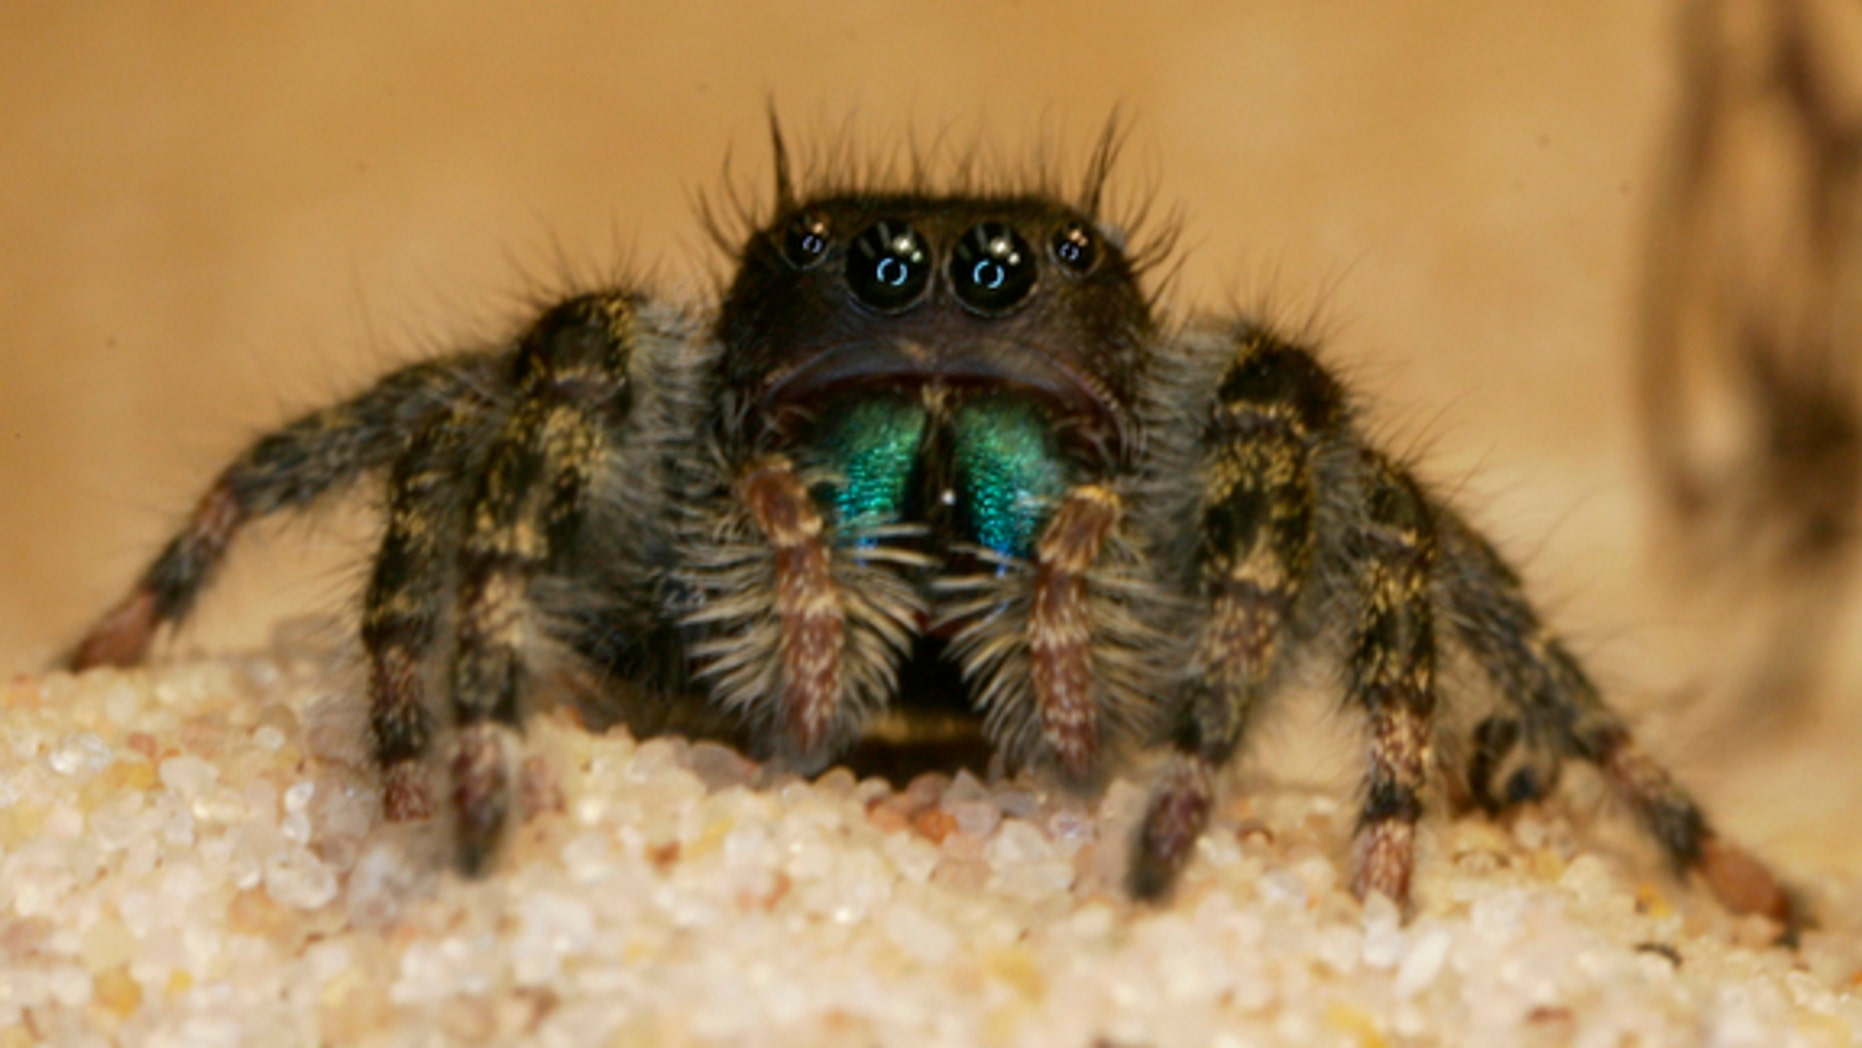 The inner workings of the brains of jumping spiders remained elusive until now.